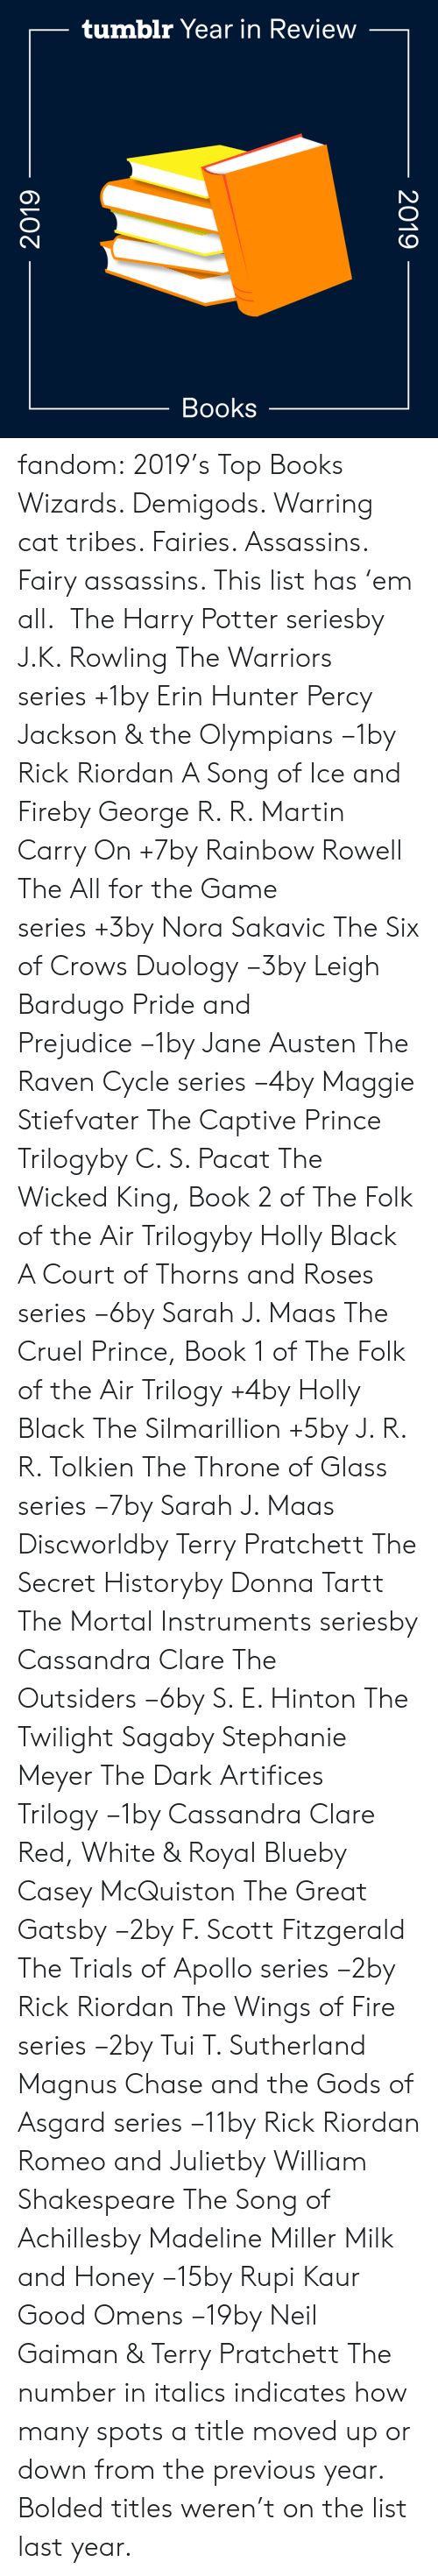 Donna: tumblr Year in Review  Books  2019  2019 fandom:  2019's Top Books  Wizards. Demigods. Warring cat tribes. Fairies. Assassins. Fairy assassins. This list has 'em all.   The Harry Potter seriesby J.K. Rowling  The Warriors series +1by Erin Hunter  Percy Jackson & the Olympians −1by Rick Riordan  A Song of Ice and Fireby George R. R. Martin  Carry On +7by Rainbow Rowell  The All for the Game series +3by Nora Sakavic  The Six of Crows Duology −3by Leigh Bardugo  Pride and Prejudice −1by Jane Austen  The Raven Cycle series −4by Maggie Stiefvater  The Captive Prince Trilogyby C. S. Pacat  The Wicked King, Book 2 of The Folk of the Air Trilogyby Holly Black  A Court of Thorns and Roses series −6by Sarah J. Maas  The Cruel Prince, Book 1 of The Folk of the Air Trilogy +4by Holly Black  The Silmarillion +5by J. R. R. Tolkien  The Throne of Glass series −7by Sarah J. Maas  Discworldby Terry Pratchett  The Secret Historyby Donna Tartt  The Mortal Instruments seriesby Cassandra Clare  The Outsiders −6by S. E. Hinton  The Twilight Sagaby Stephanie Meyer  The Dark Artifices Trilogy −1by Cassandra Clare  Red, White & Royal Blueby Casey McQuiston  The Great Gatsby −2by F. Scott Fitzgerald  The Trials of Apollo series −2by Rick Riordan  The Wings of Fire series −2by Tui T. Sutherland  Magnus Chase and the Gods of Asgard series −11by Rick Riordan  Romeo and Julietby William Shakespeare  The Song of Achillesby Madeline Miller  Milk and Honey −15by Rupi Kaur  Good Omens −19by Neil Gaiman & Terry Pratchett The number in italics indicates how many spots a title moved up or down from the previous year. Bolded titles weren't on the list last year.